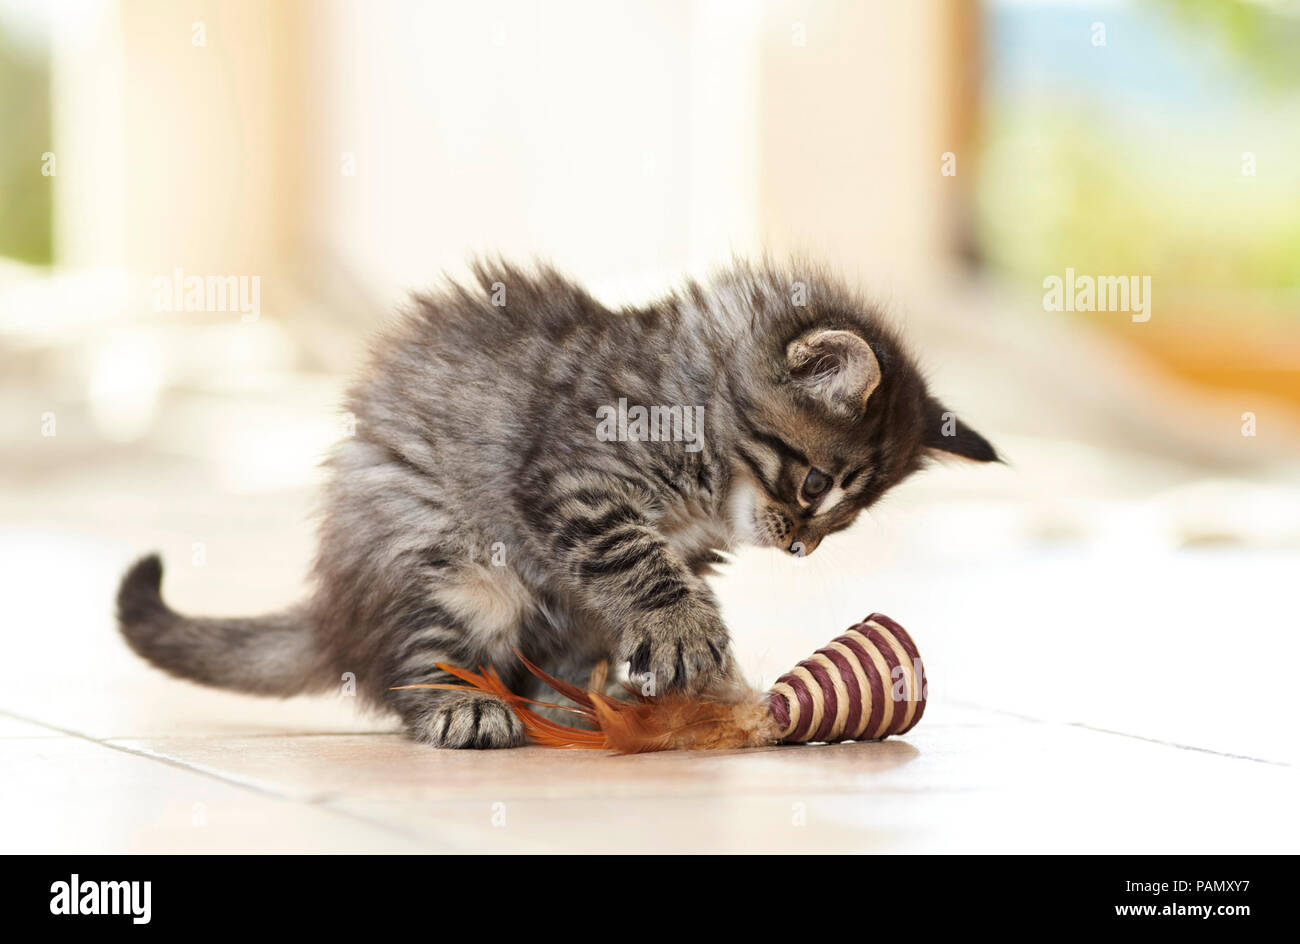 Norwegian Forest Cat. Kitten playing with toy on tiled floor. Germany - Stock Image